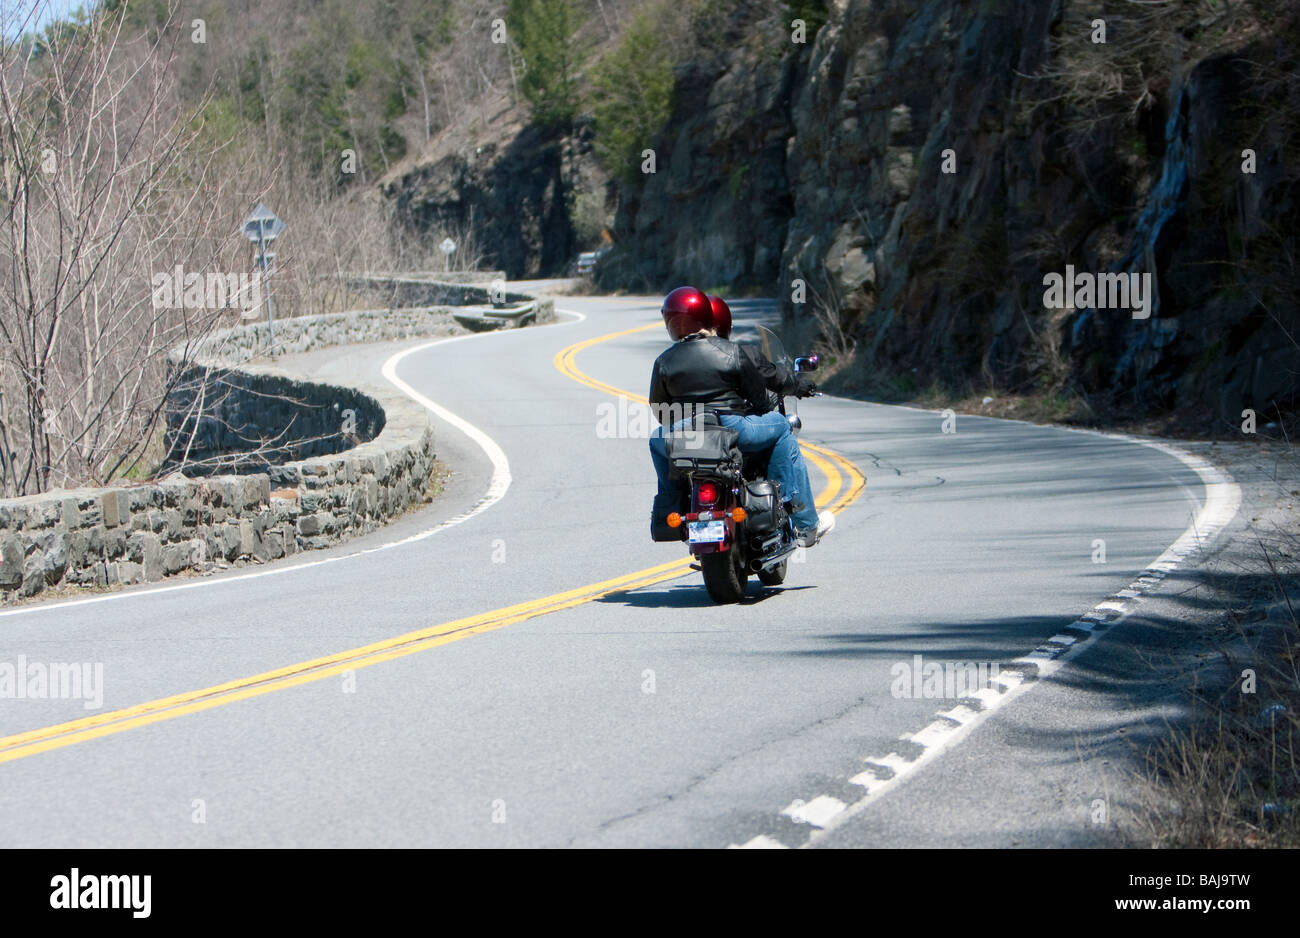 Curves new york Interior Motorcycle Riding The Curves At Hawks Nest New York Vh1com Motorcycle Riding The Curves At Hawks Nest New York Stock Photo